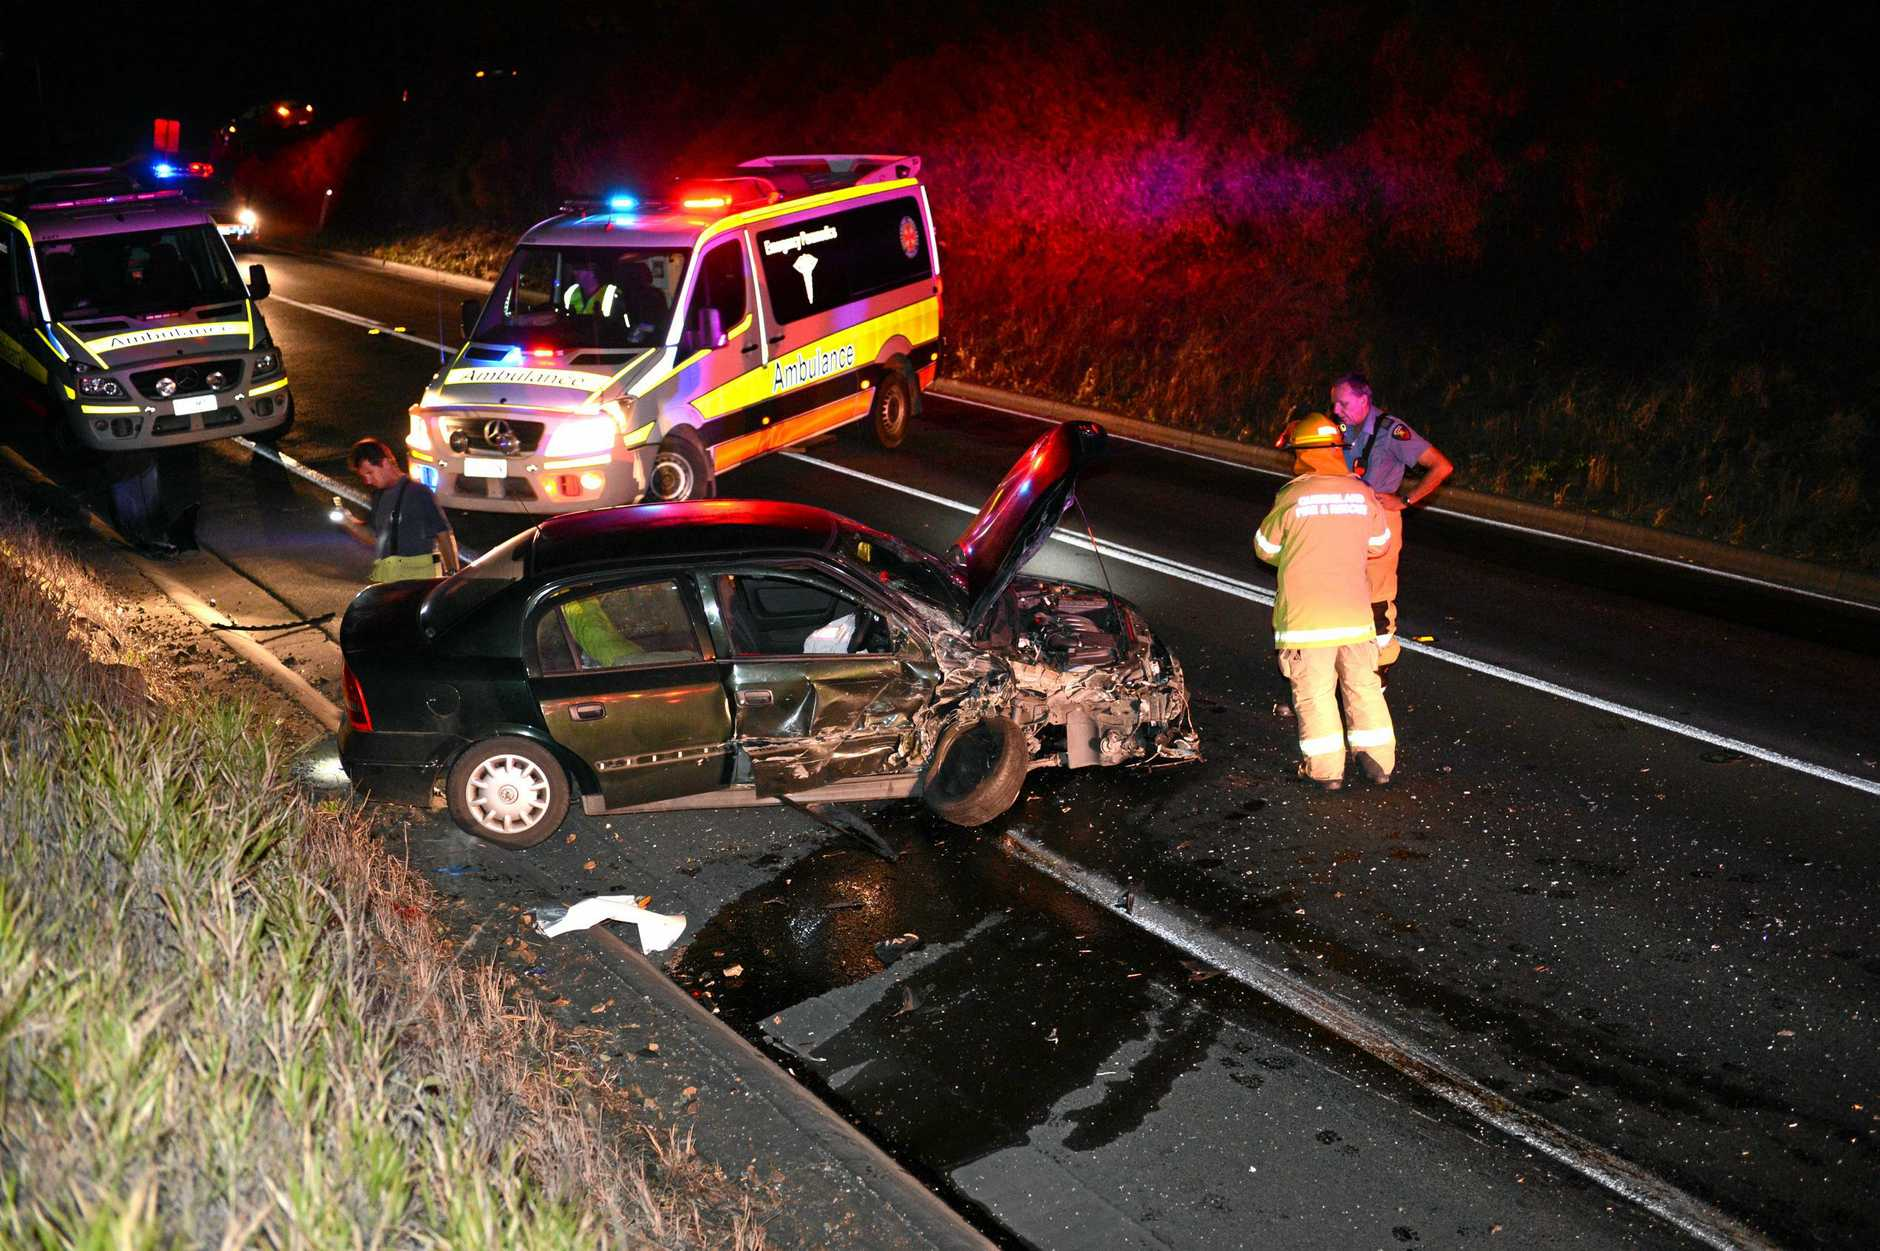 SAD CLAIM: The Gympie region recorded the highest rate of fatal crashes per capita of the Wide Bay Burnett council areas, transport data has revealed.